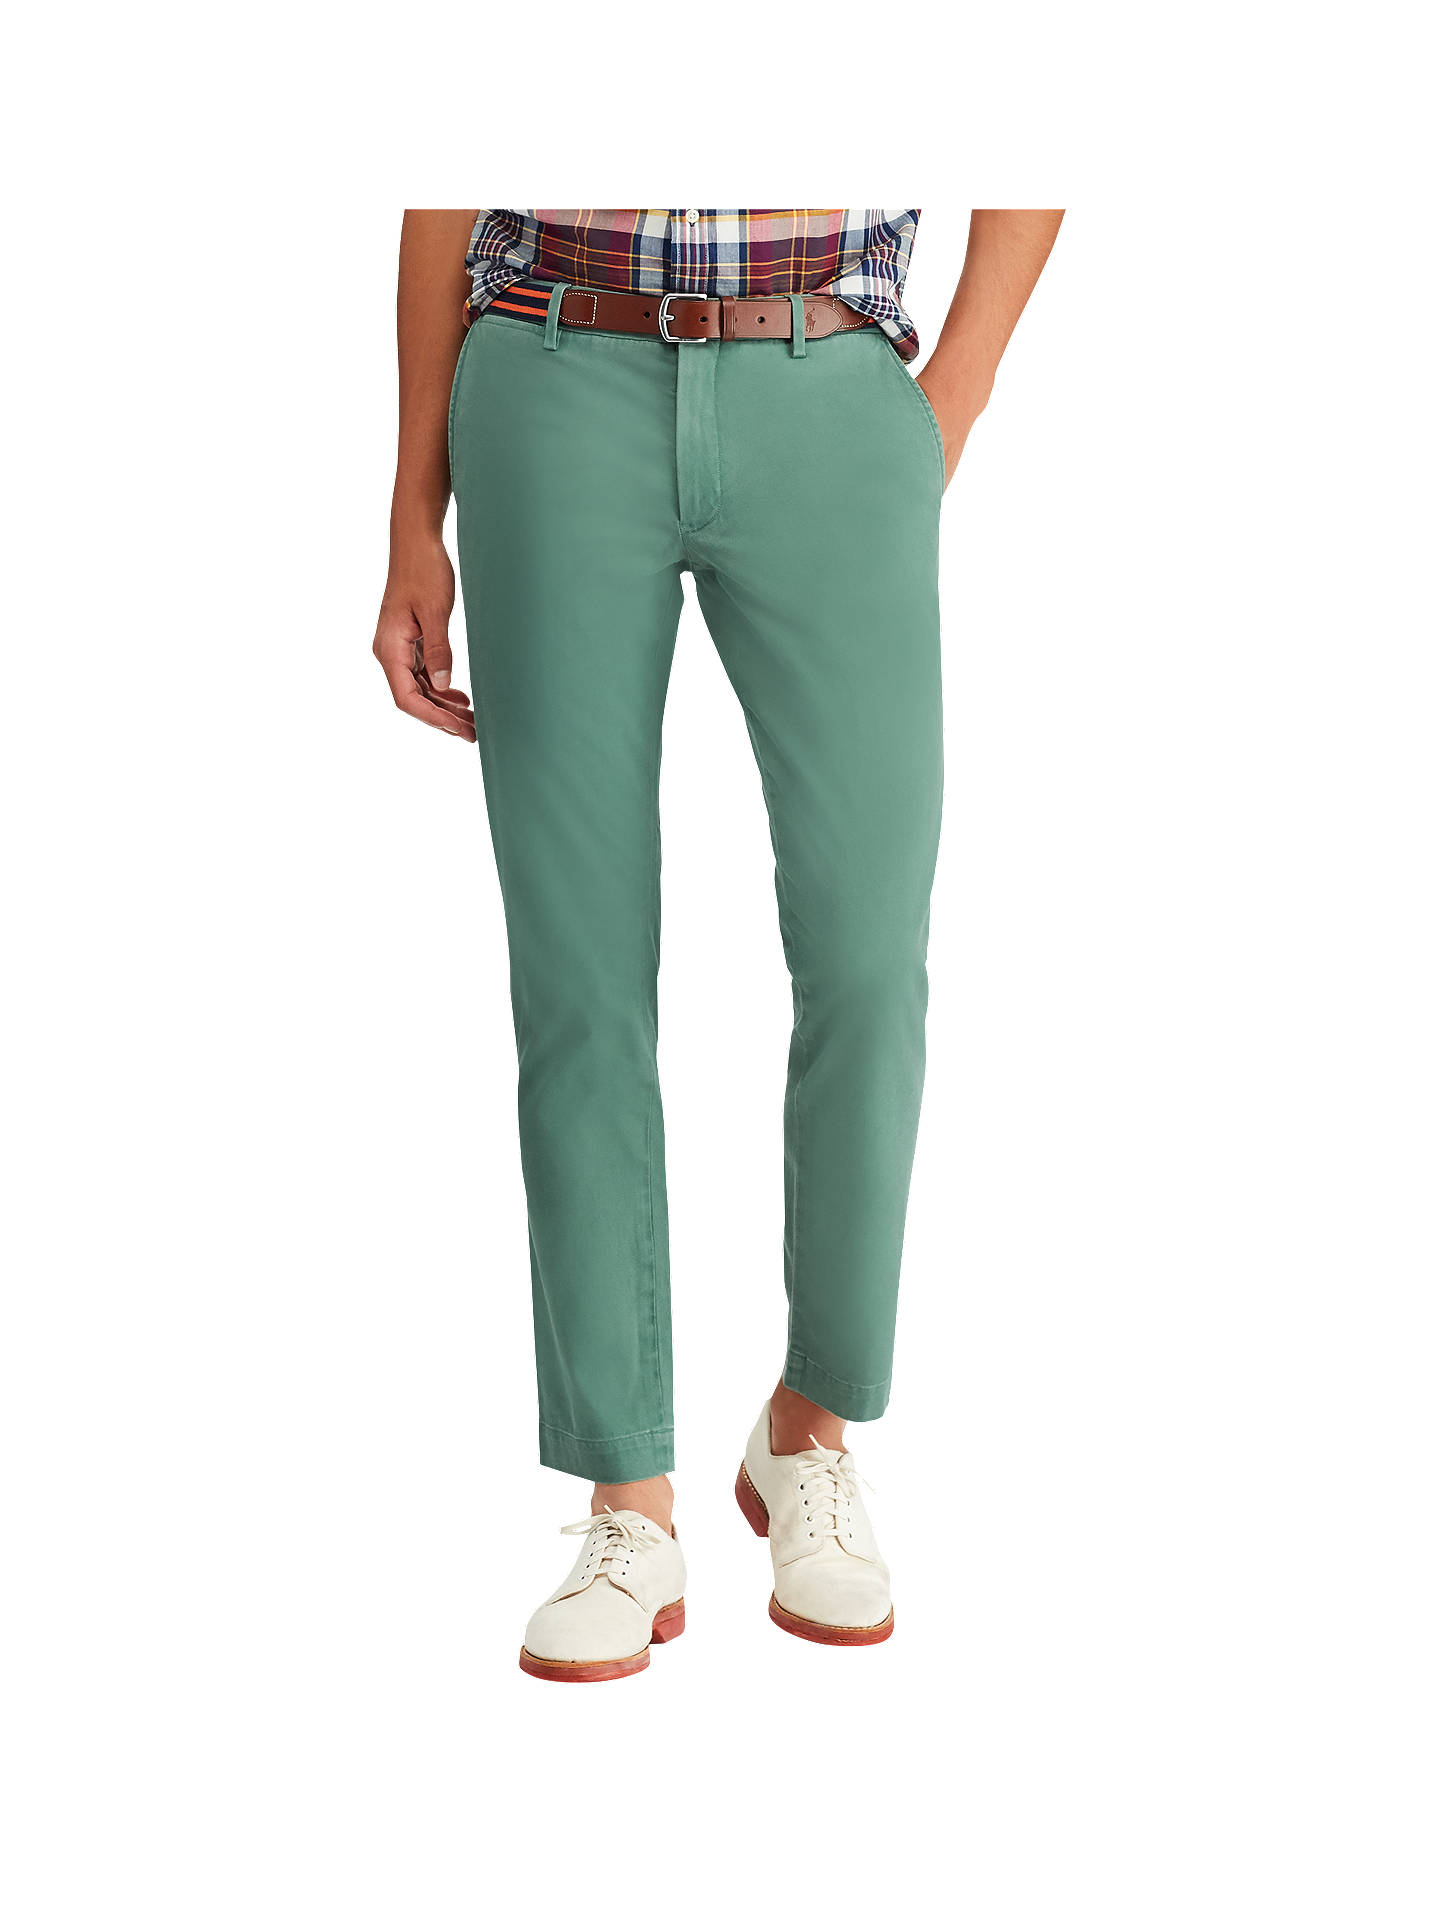 Buy Polo Ralph Lauren Flat Pant GD Chinos, Washed Forest, 32R Online at johnlewis.com